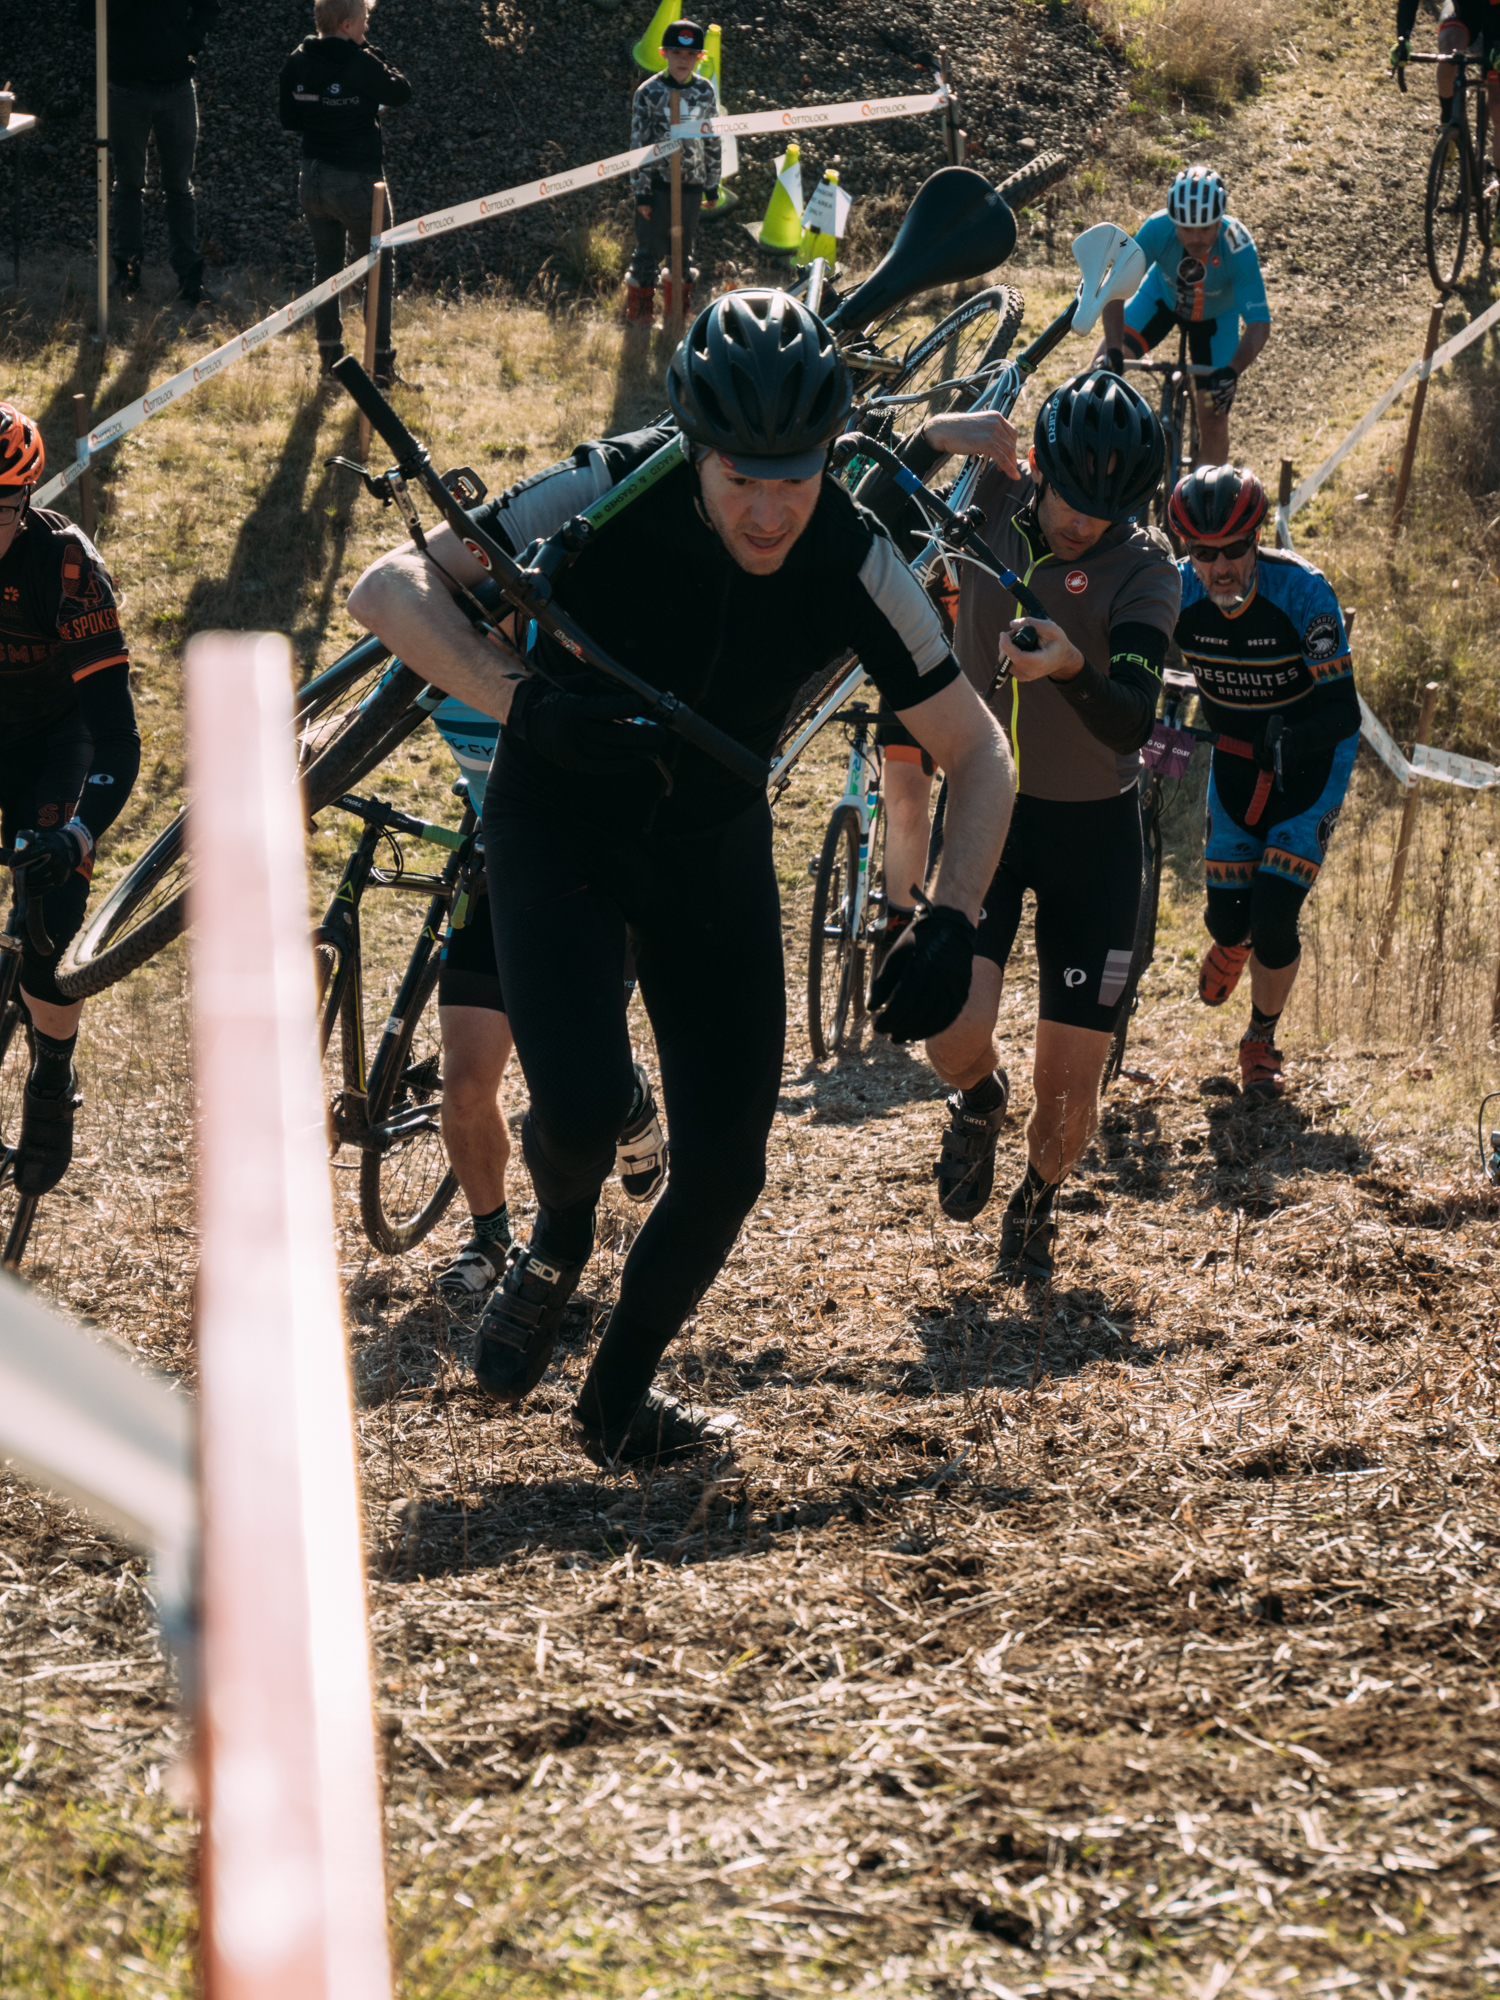 Cyclocross18_CCCX_BartonPark-mettlecycling9.jpg